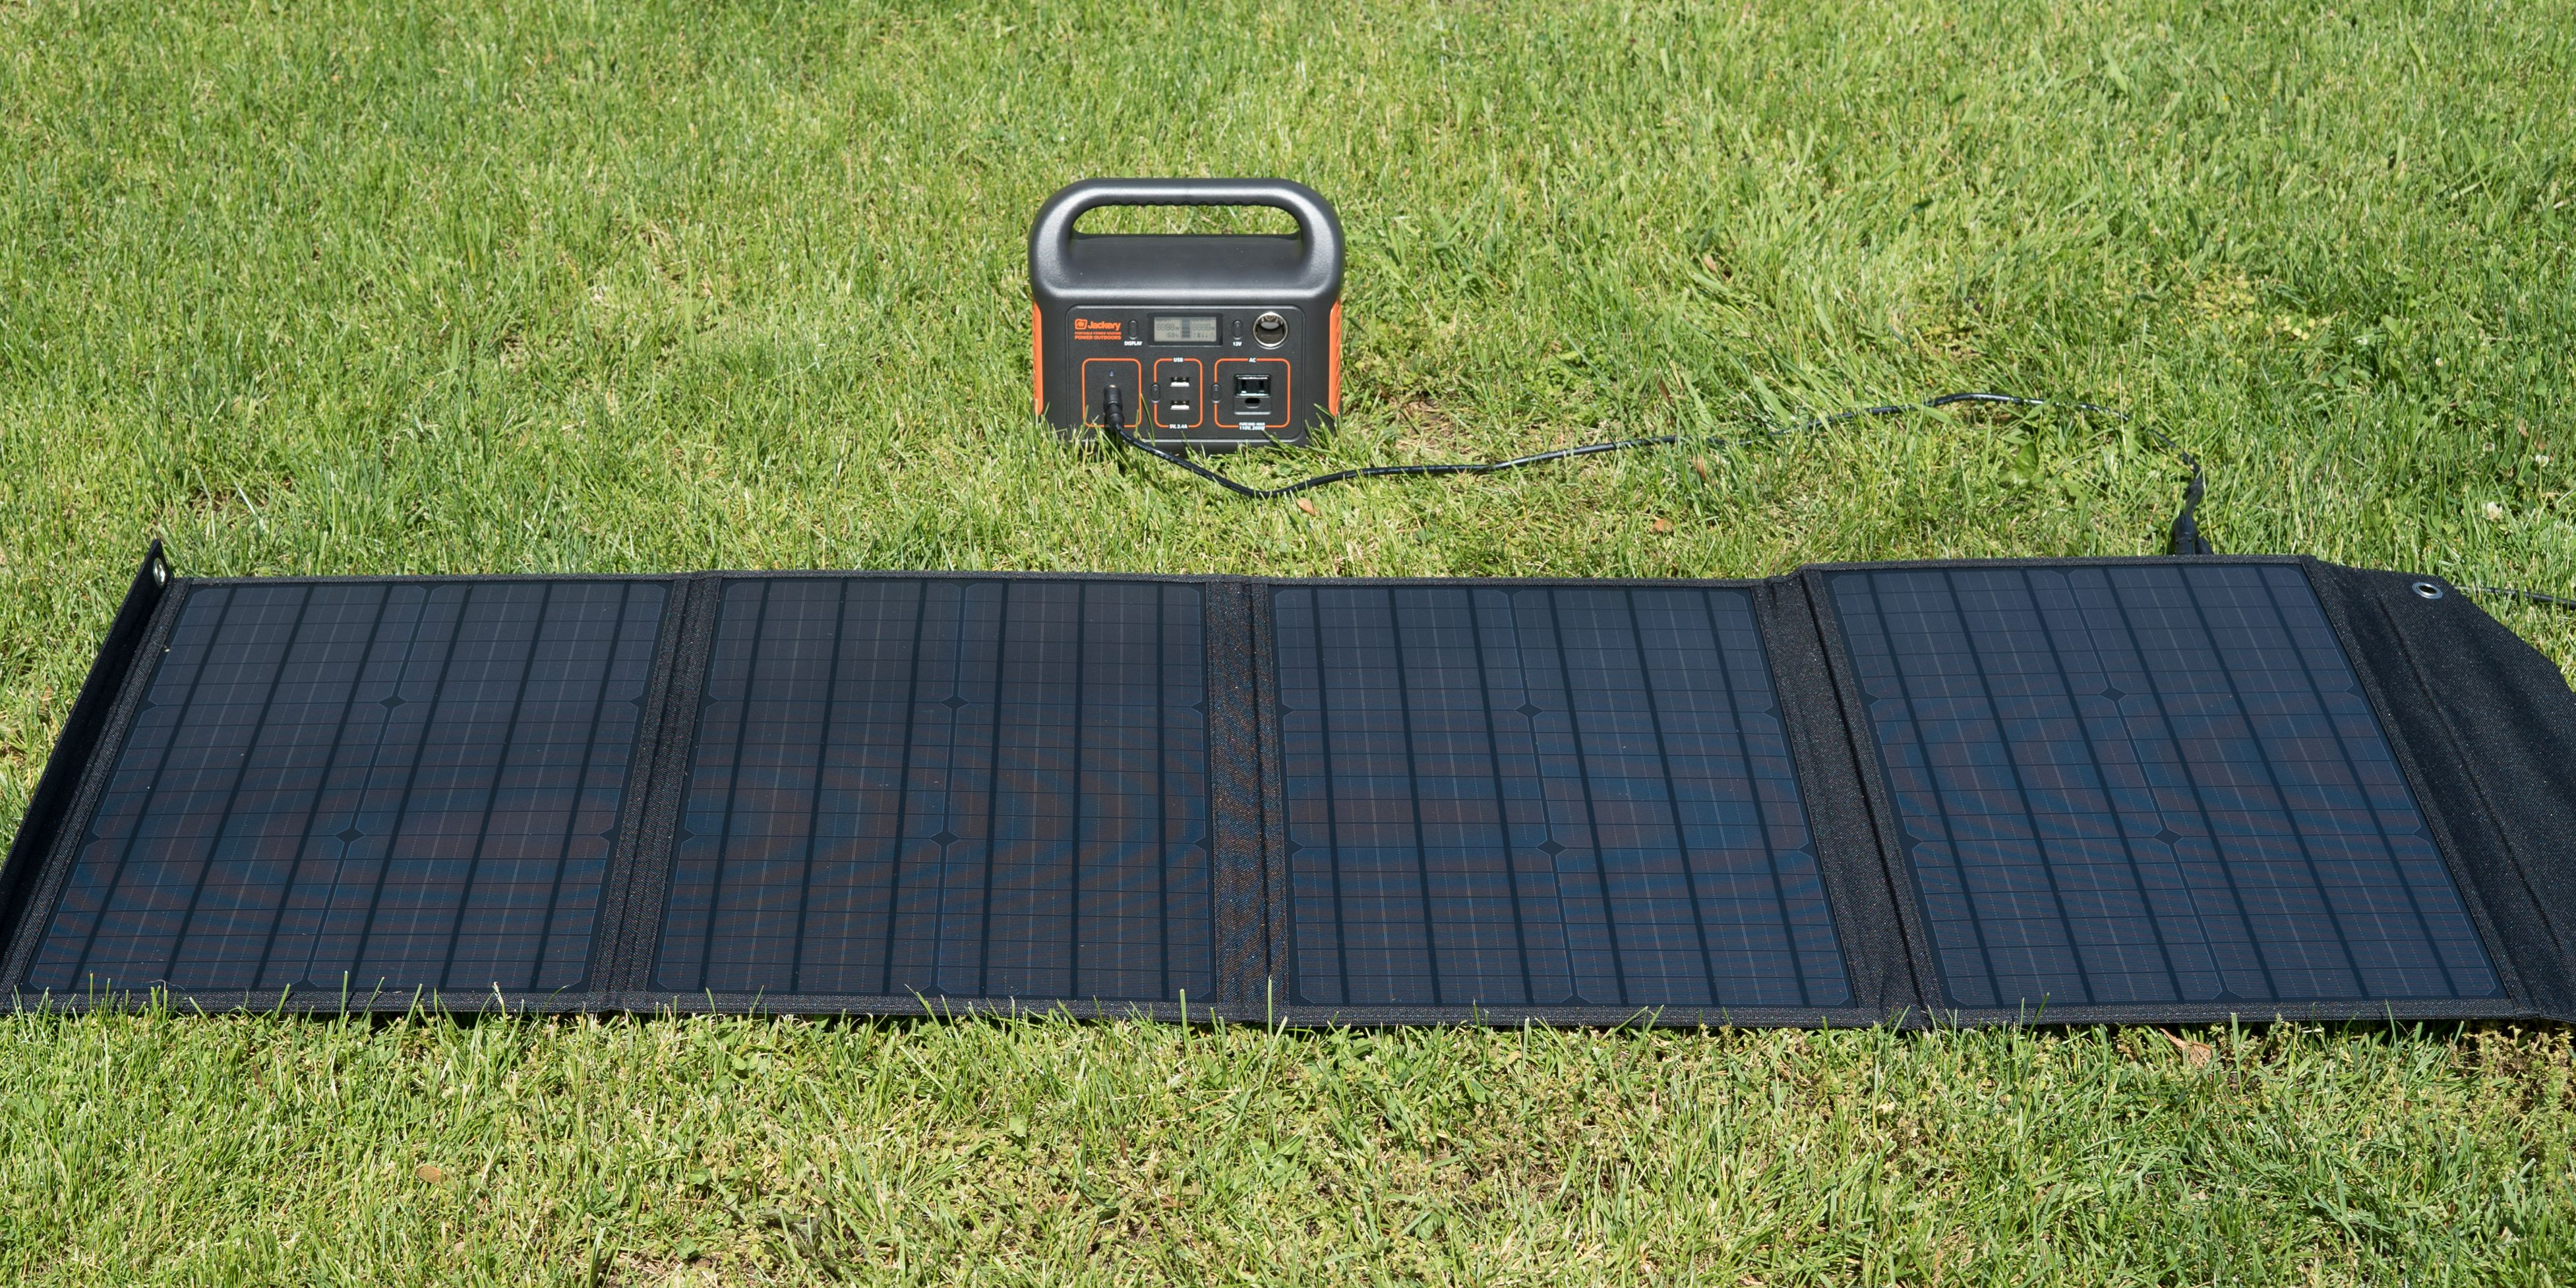 Rockpals 100w Foldable Solar Panel Review Keep Charging While Off Grid Video Solar Panels Solar Power Diy Solar